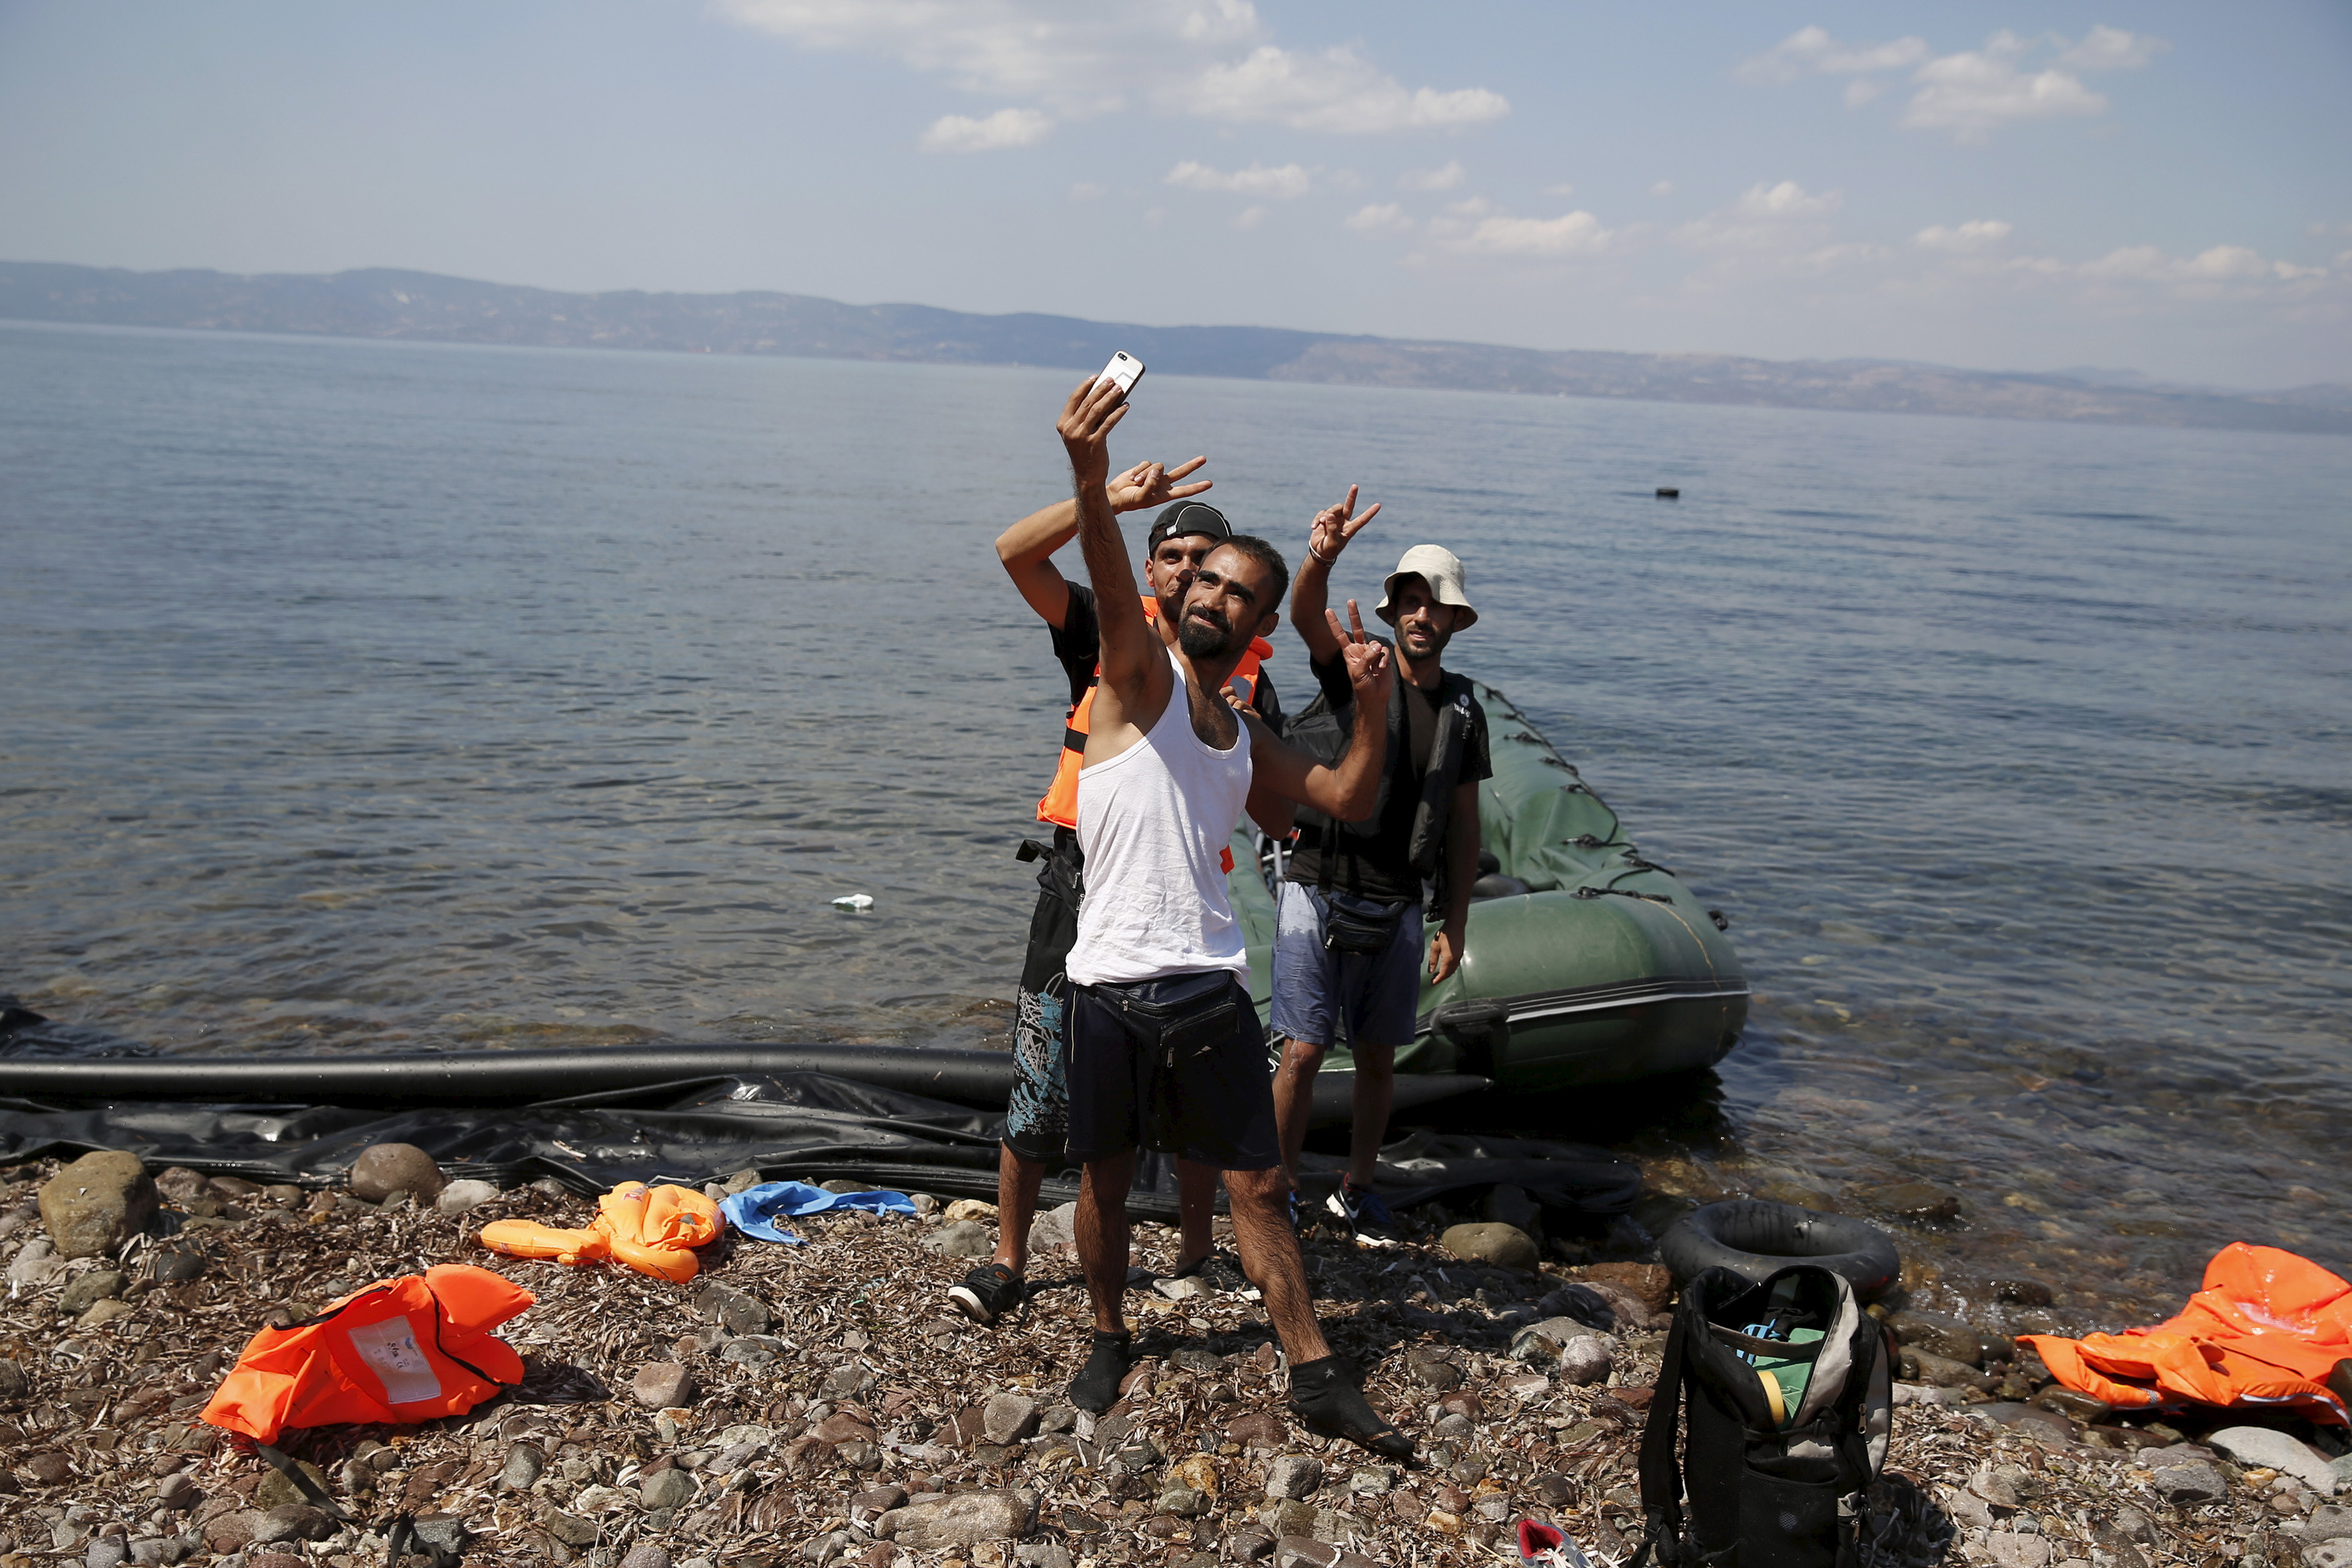 Syrian refugees from Kobani pose for a selfie, moments after arriving on a dinghy on the island of Lesbos, Greece August 23, 2015. Photo by Alkis Konstantinidis/Reuters.